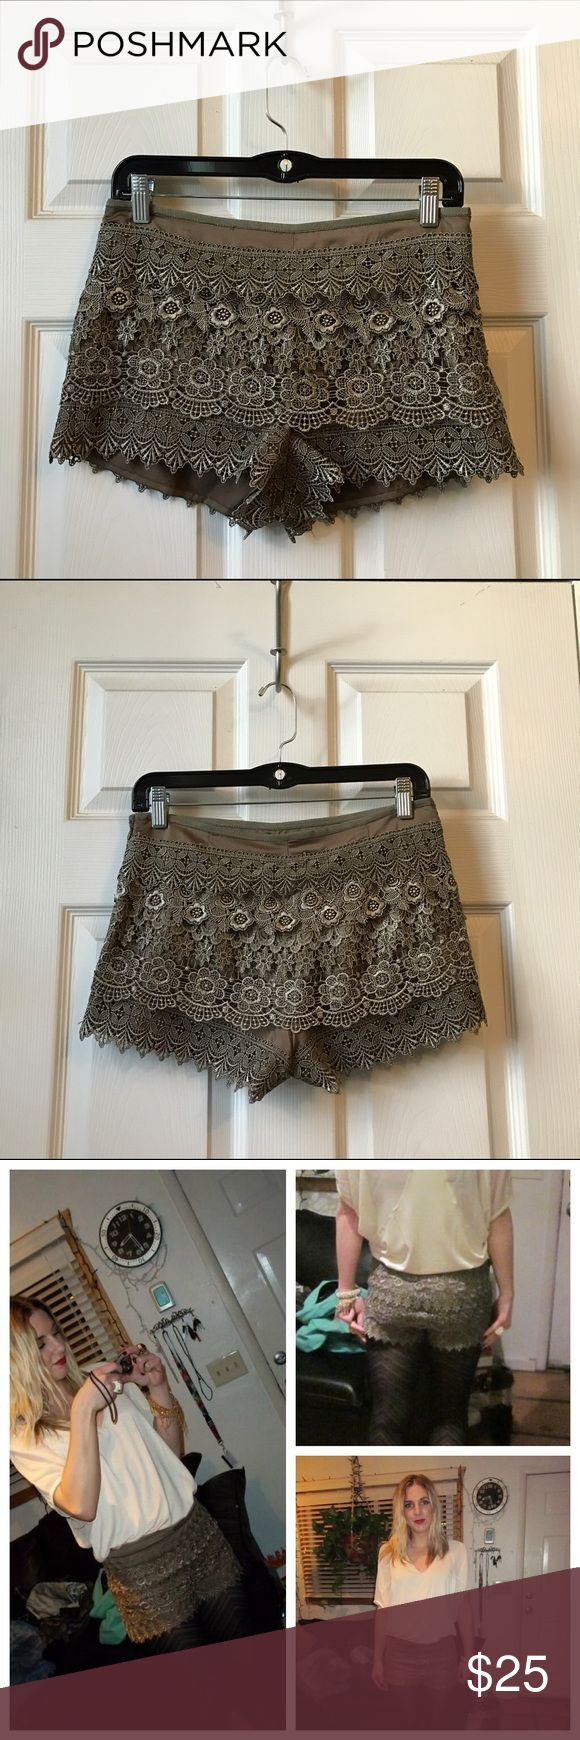 Urban Outfitters: Sans Souci lace shorts Urban Outfitters Sans Souci lace shorts with zip side / Worn once / great pairs with tights and heels Urban Outfitters Shorts